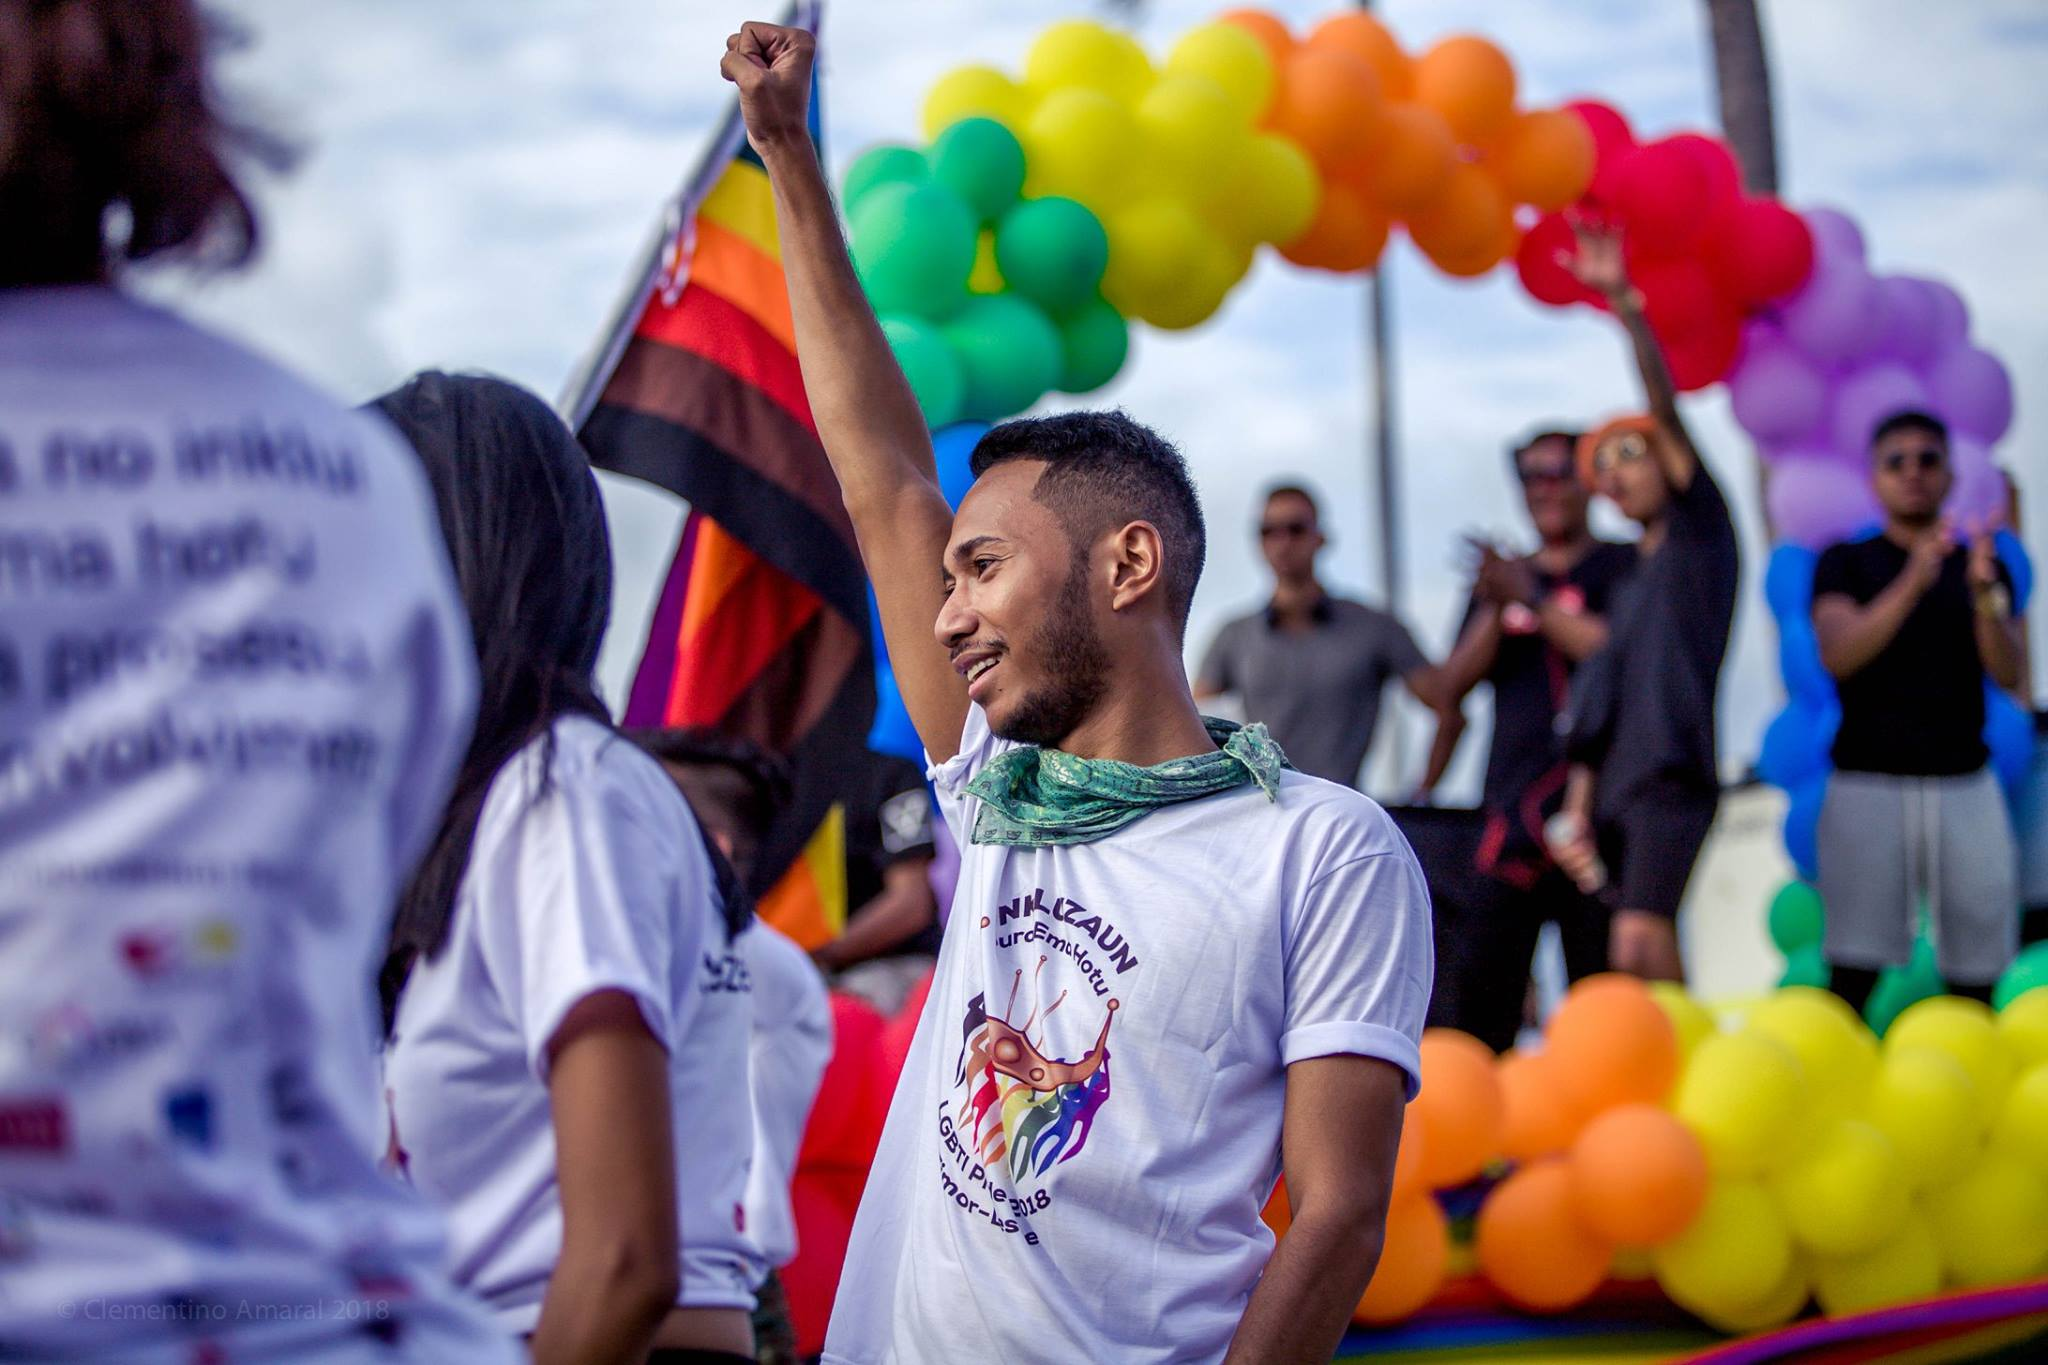 Community members march in Timor-Leste's 2018 Pride parade. Credit: Clementino Amaral